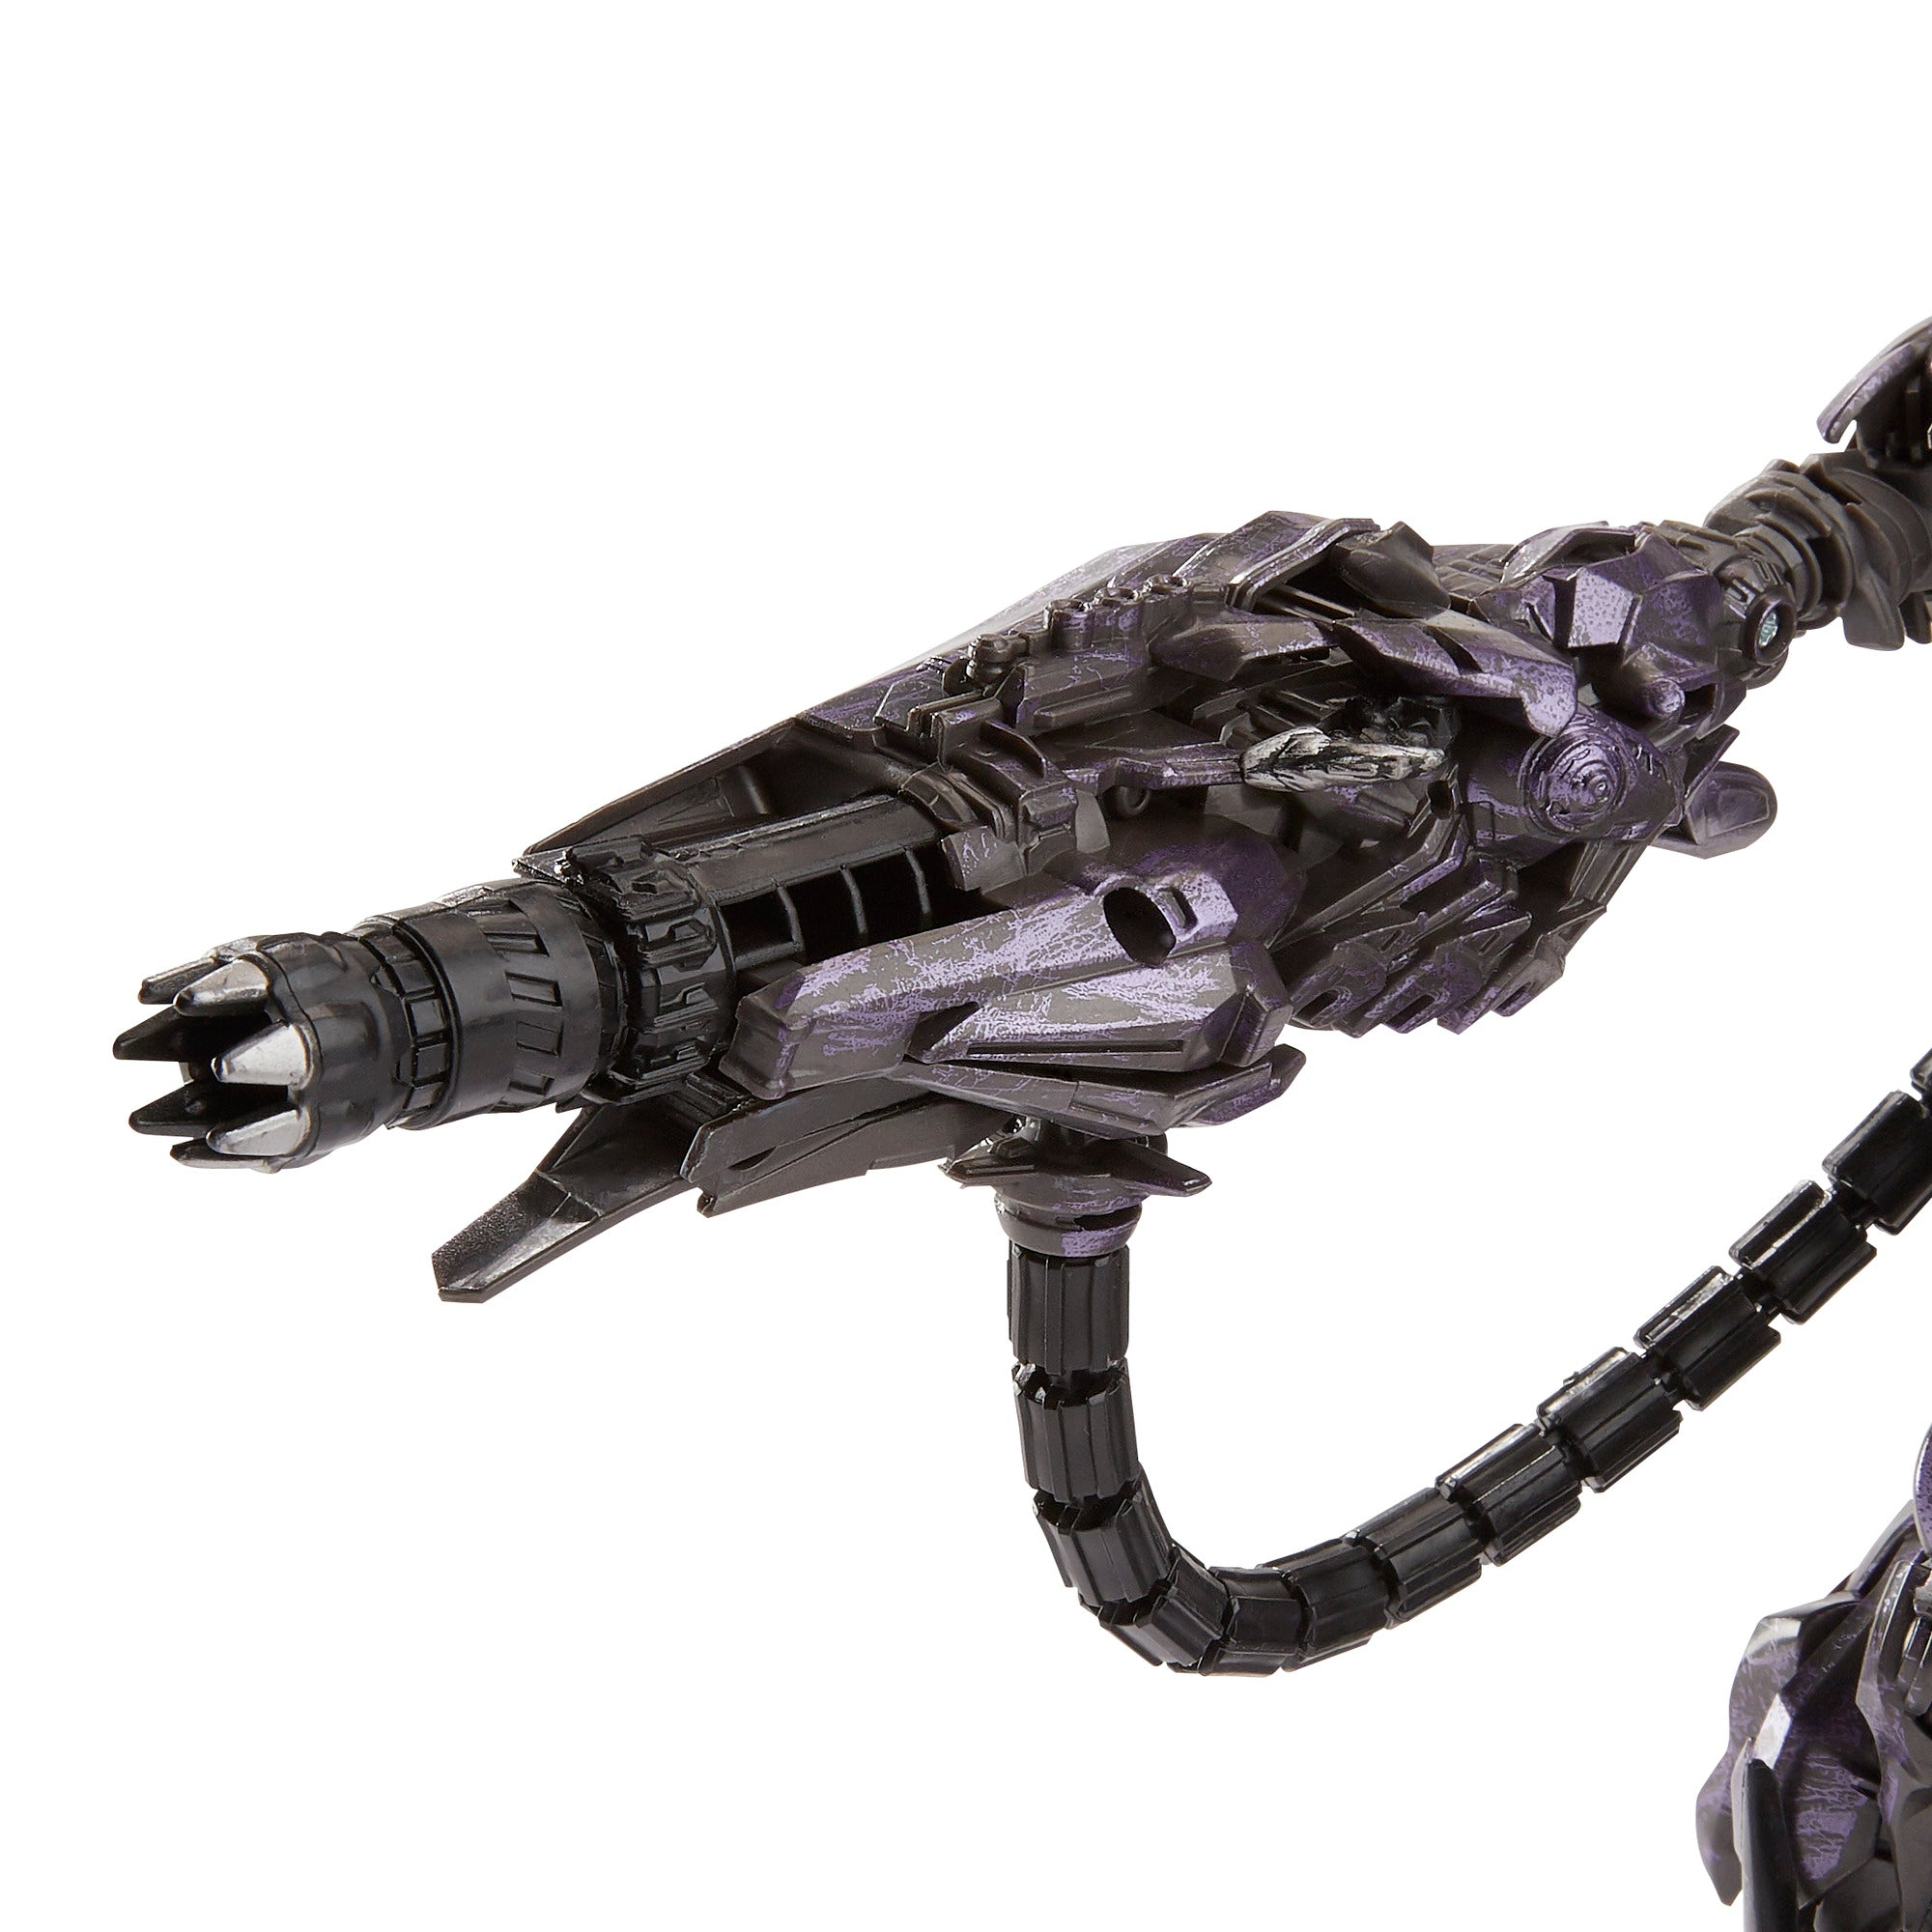 Transformers Studio Series 56 - Dark of the Moon - Shockwave (E7311) Action Figure